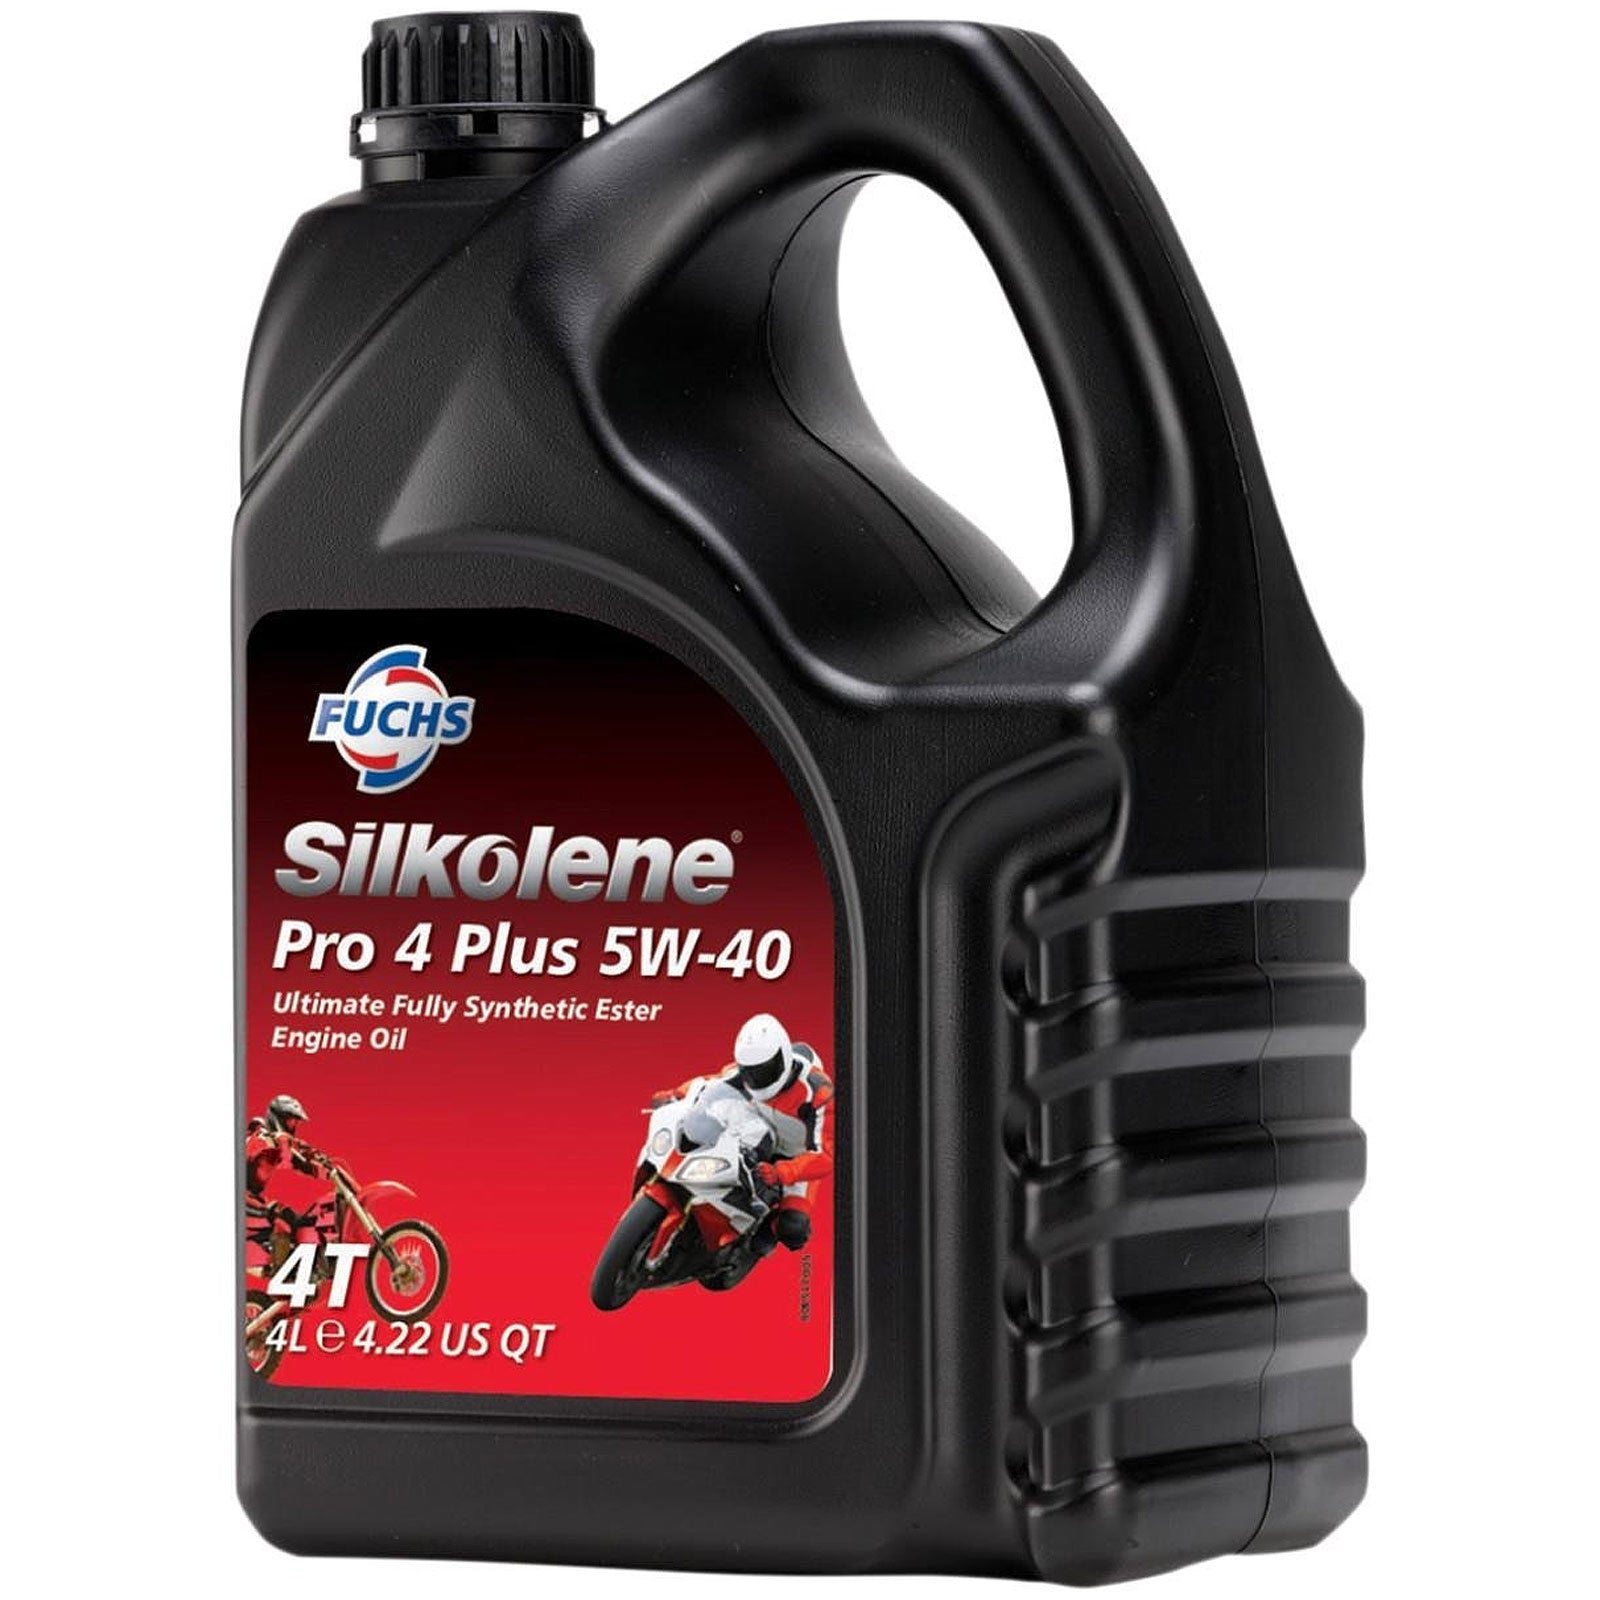 Pro 4 Plus, Engine Oil, Silkolene - Race and Trackday Parts